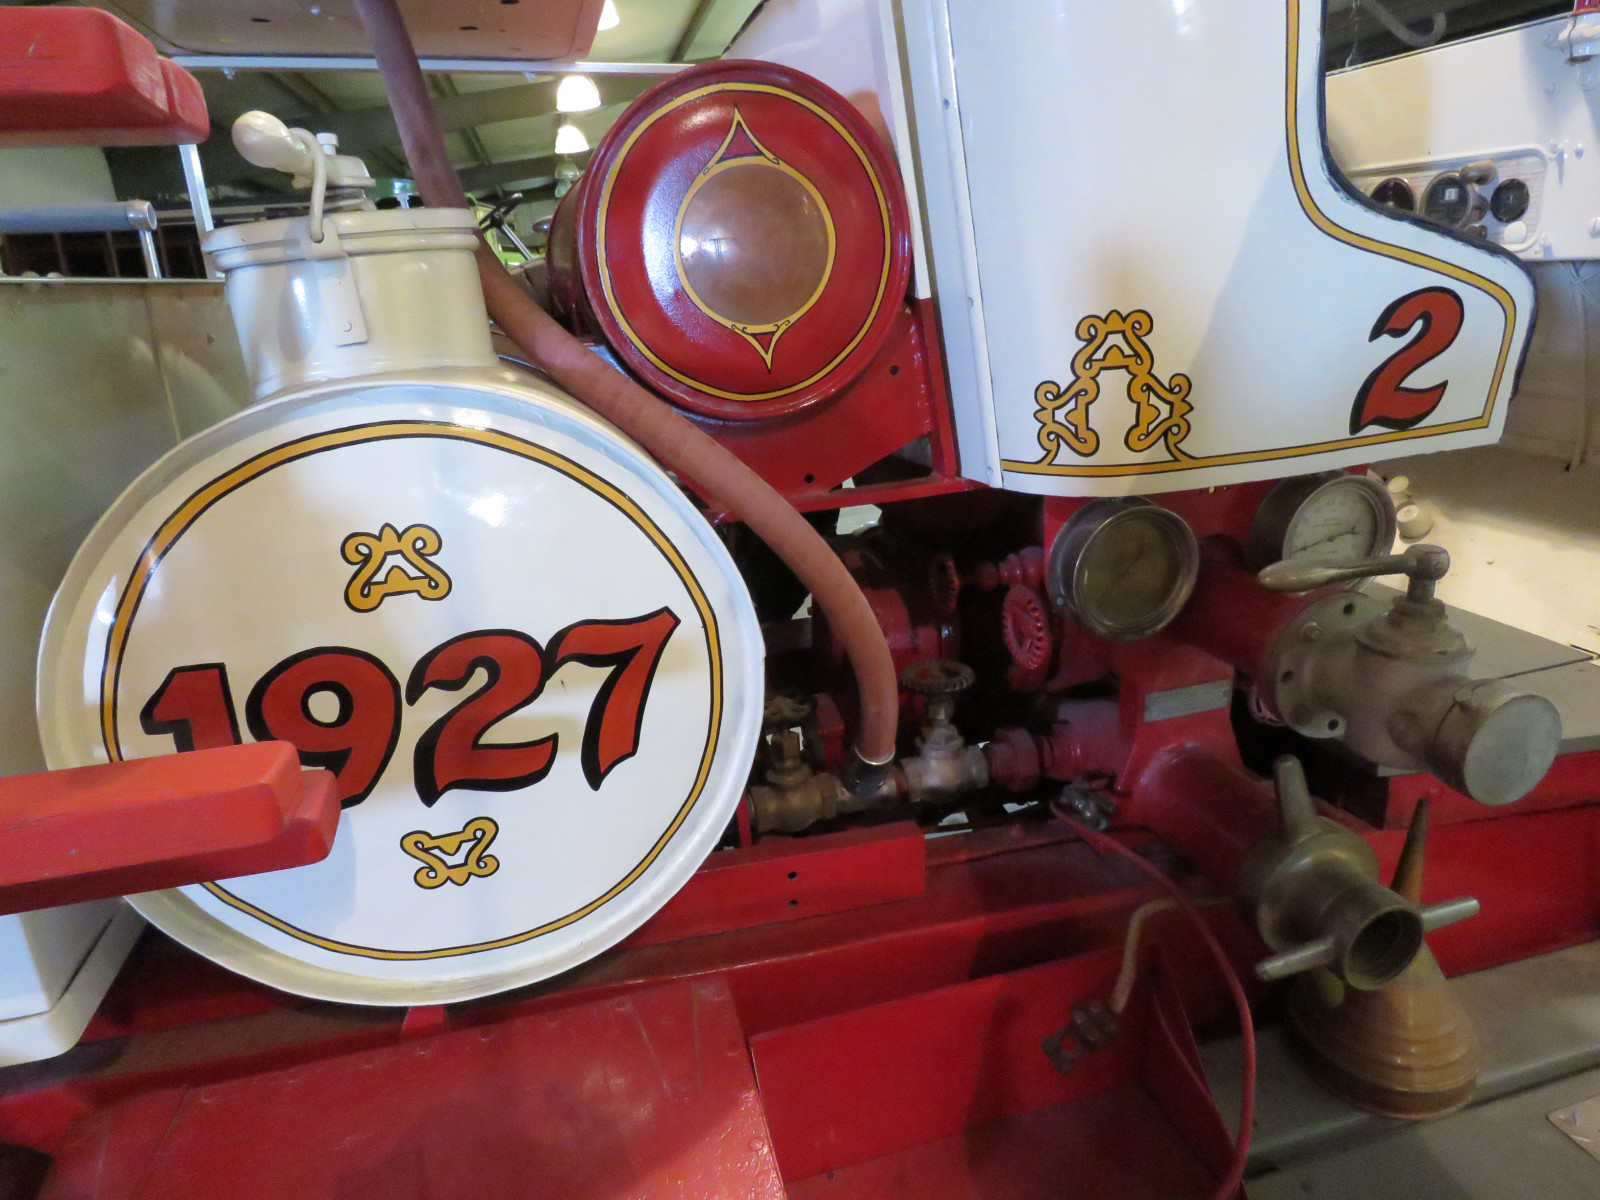 1927 REO Speed Wagon Fire Truck T6W99483 - Image 8